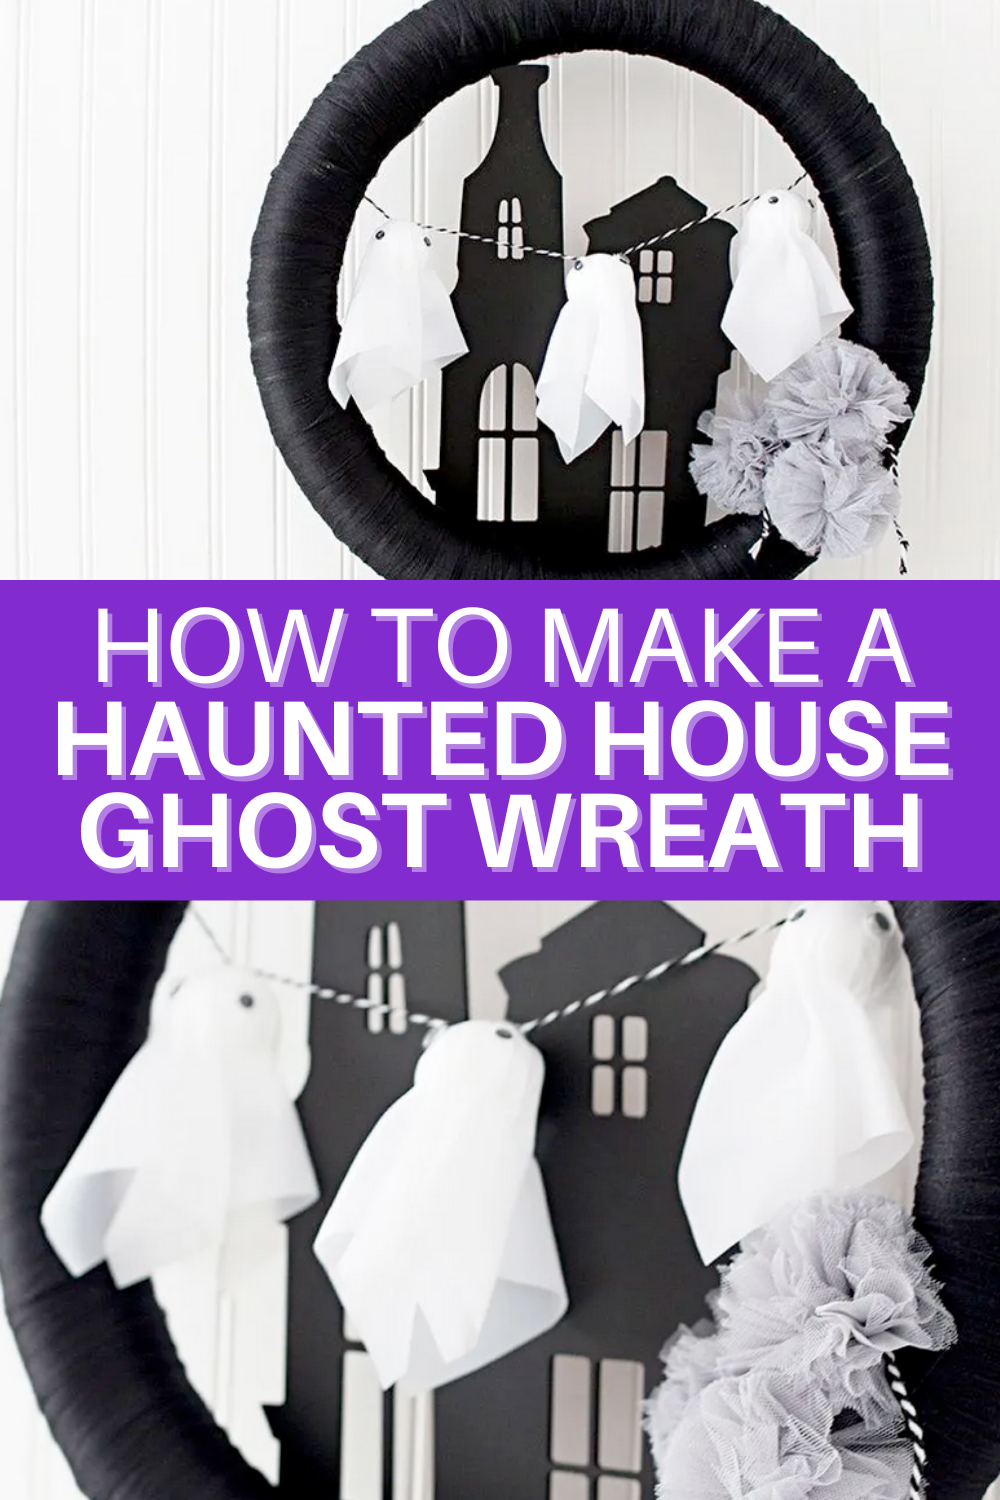 Cains Halloween Haunt 2020 Make a Haunted House Ghost Wreath in 2020 | Haunted house